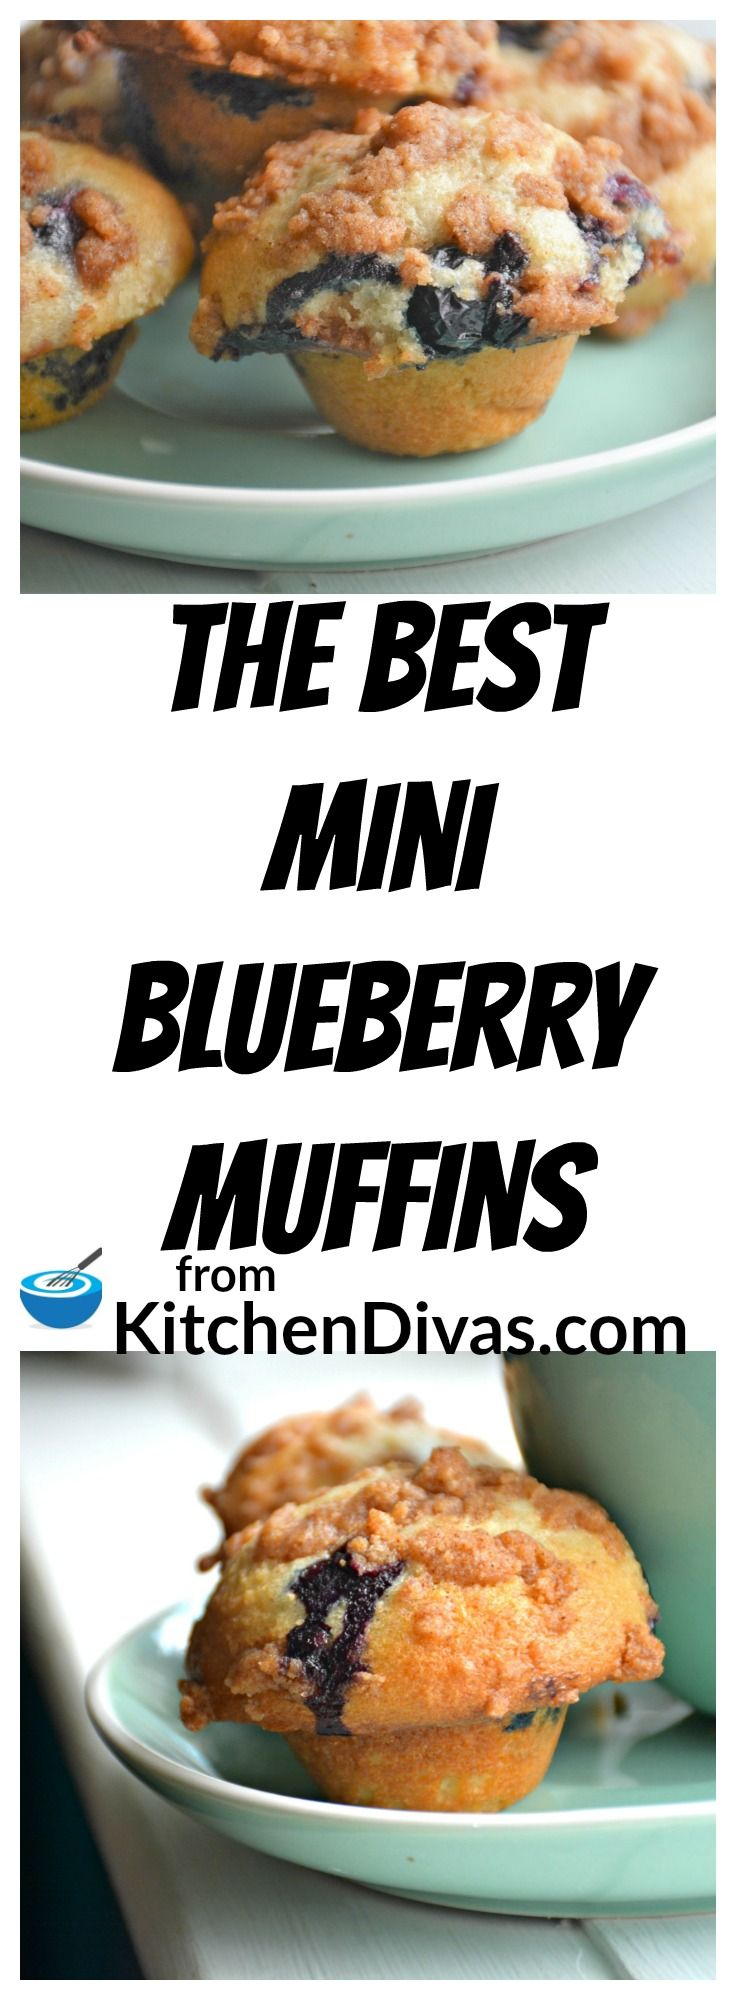 These Mini Blueberry Muffins are so yummy!  We usually use store bought pureed applesauce instead of vegetable oil to make these muffins and they turn out perfect every time.  Whether you make the muffins big or small, this recipe is one you will make over and over again!